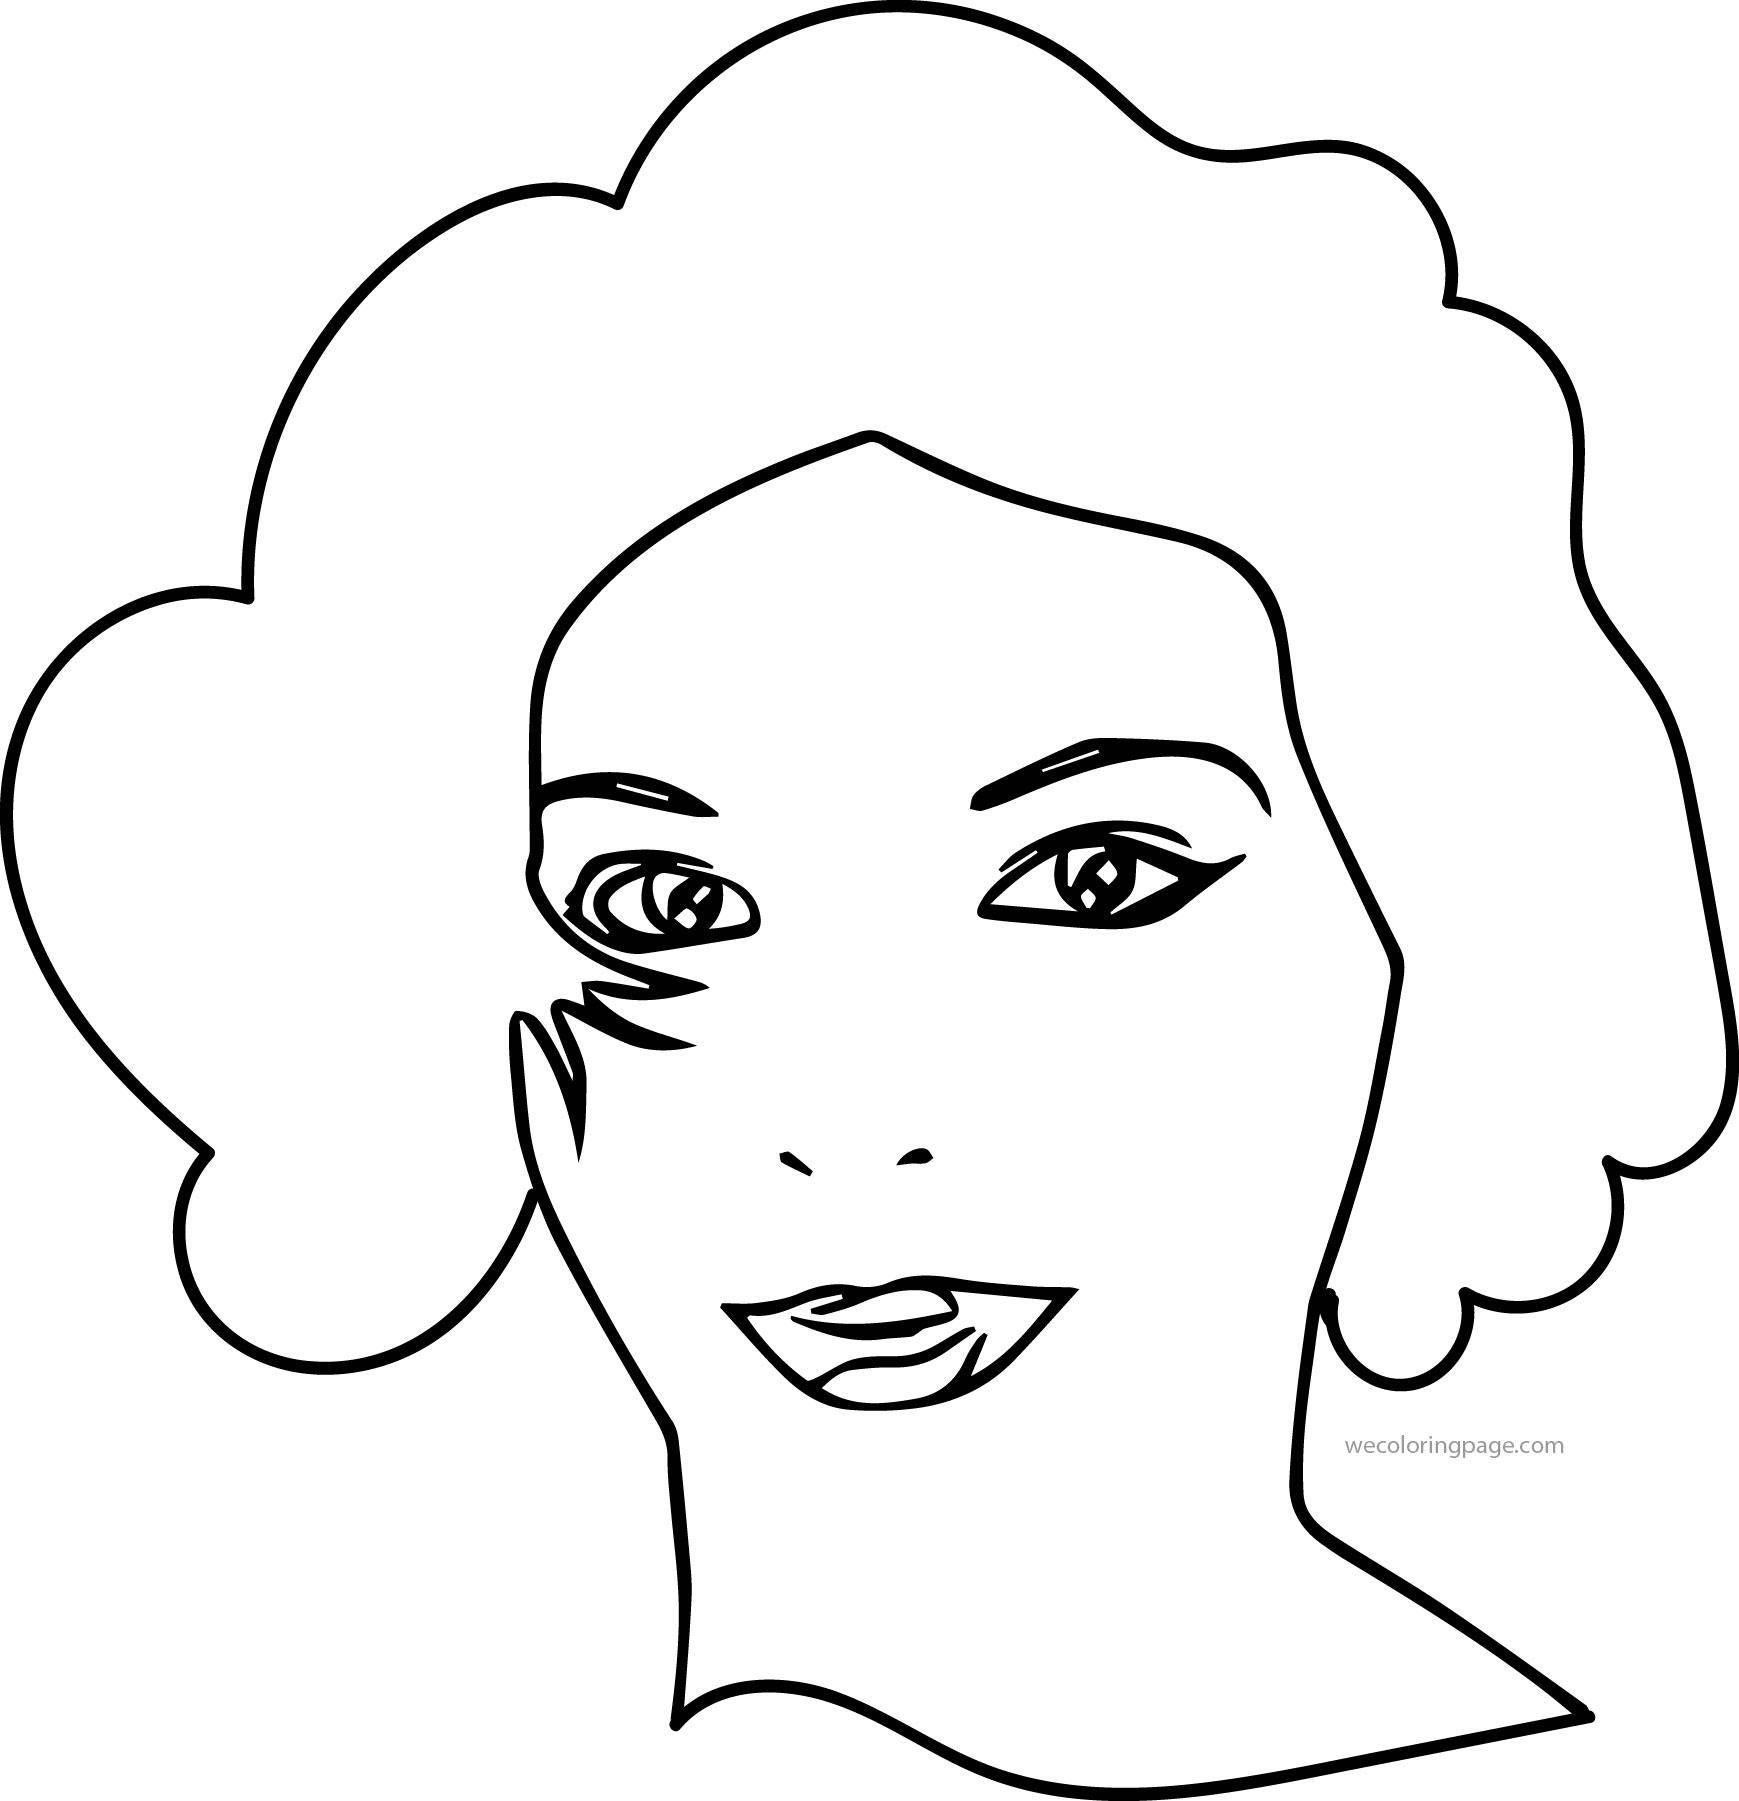 Woman Outline Face Coloring Page